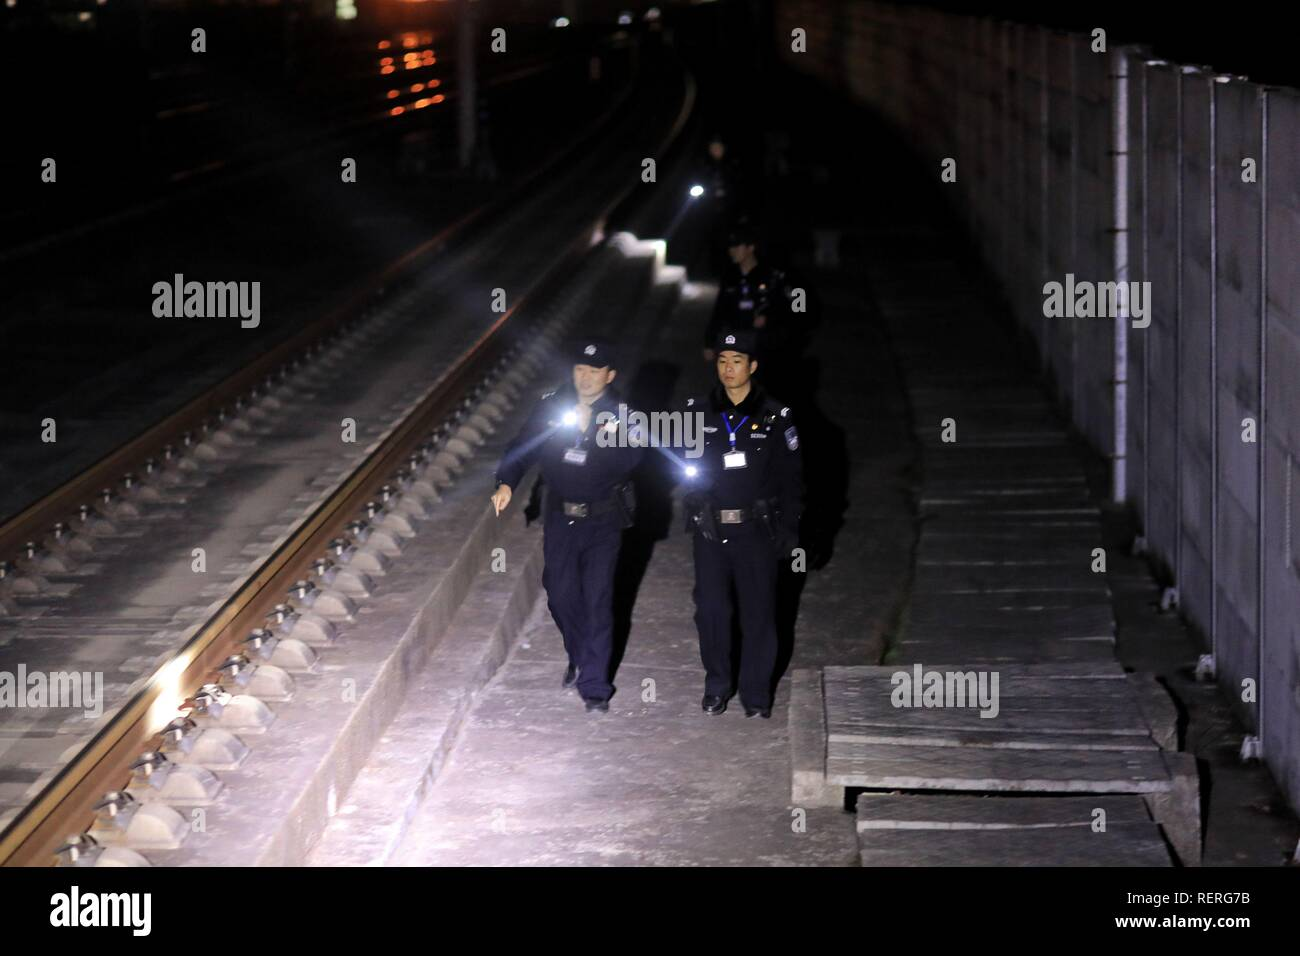 (190123) -- RONGJIANG, Jan. 23, 2019 (Xinhua) -- Police officers patrol on Guiyang-Guangzhou High-speed Railway, Jan. 22, 2019. Rongjiang Railway Police Station conducts two or three safety inspections at night every week during the Spring Festival travel rush. (Xinhua/Ou Dongqu) - Stock Image